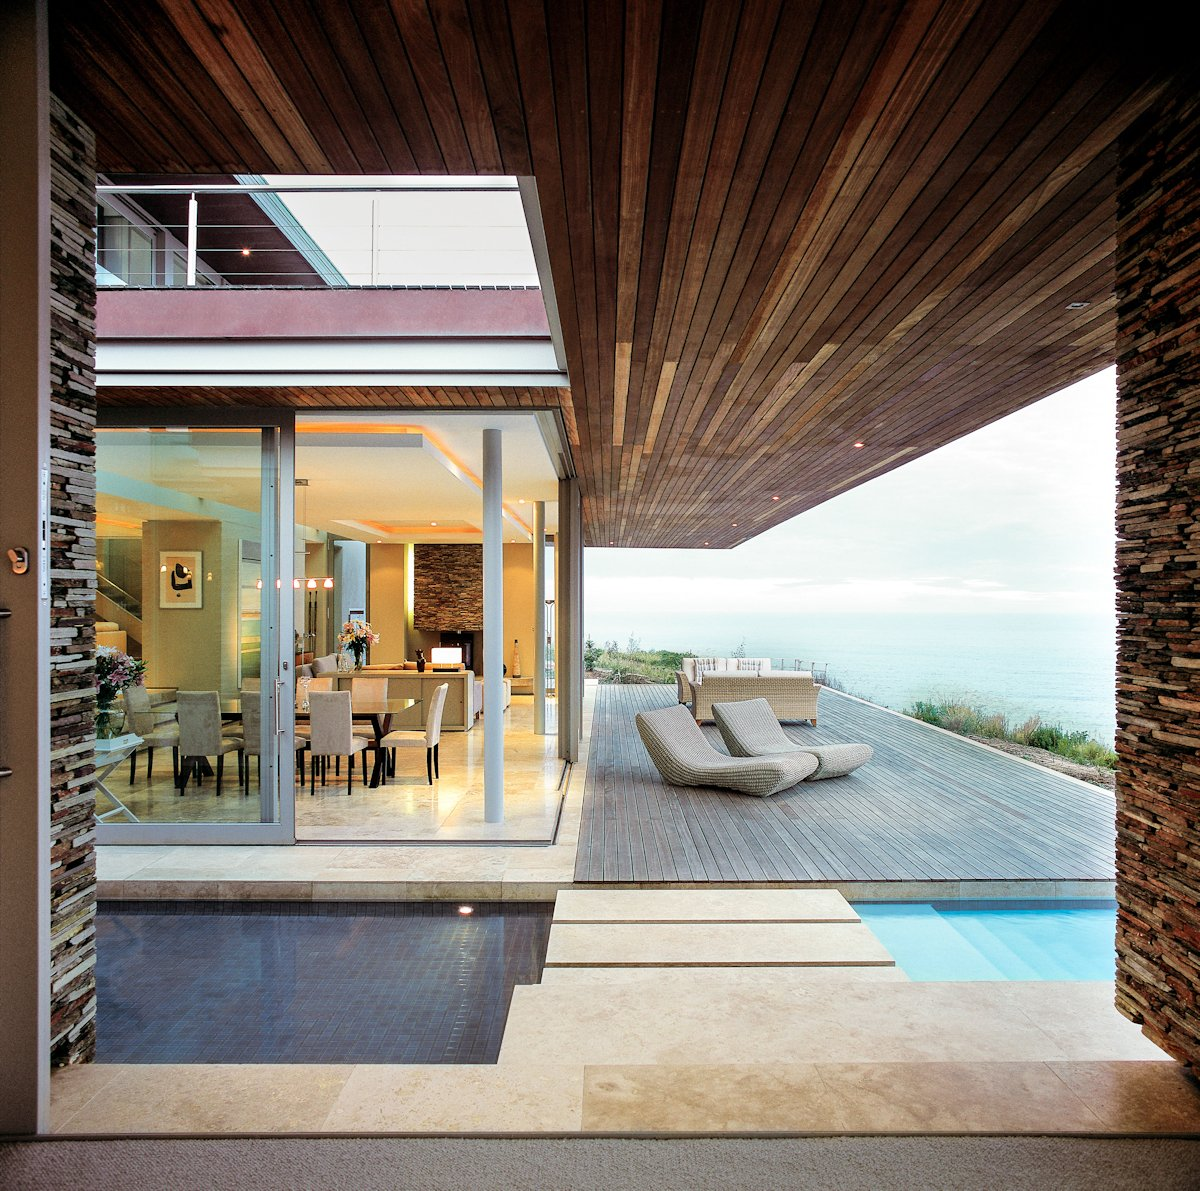 Wood Flooring, Ceiling, Glass Sliding Doors, Cliff Top Home in Knyzna, South Africa